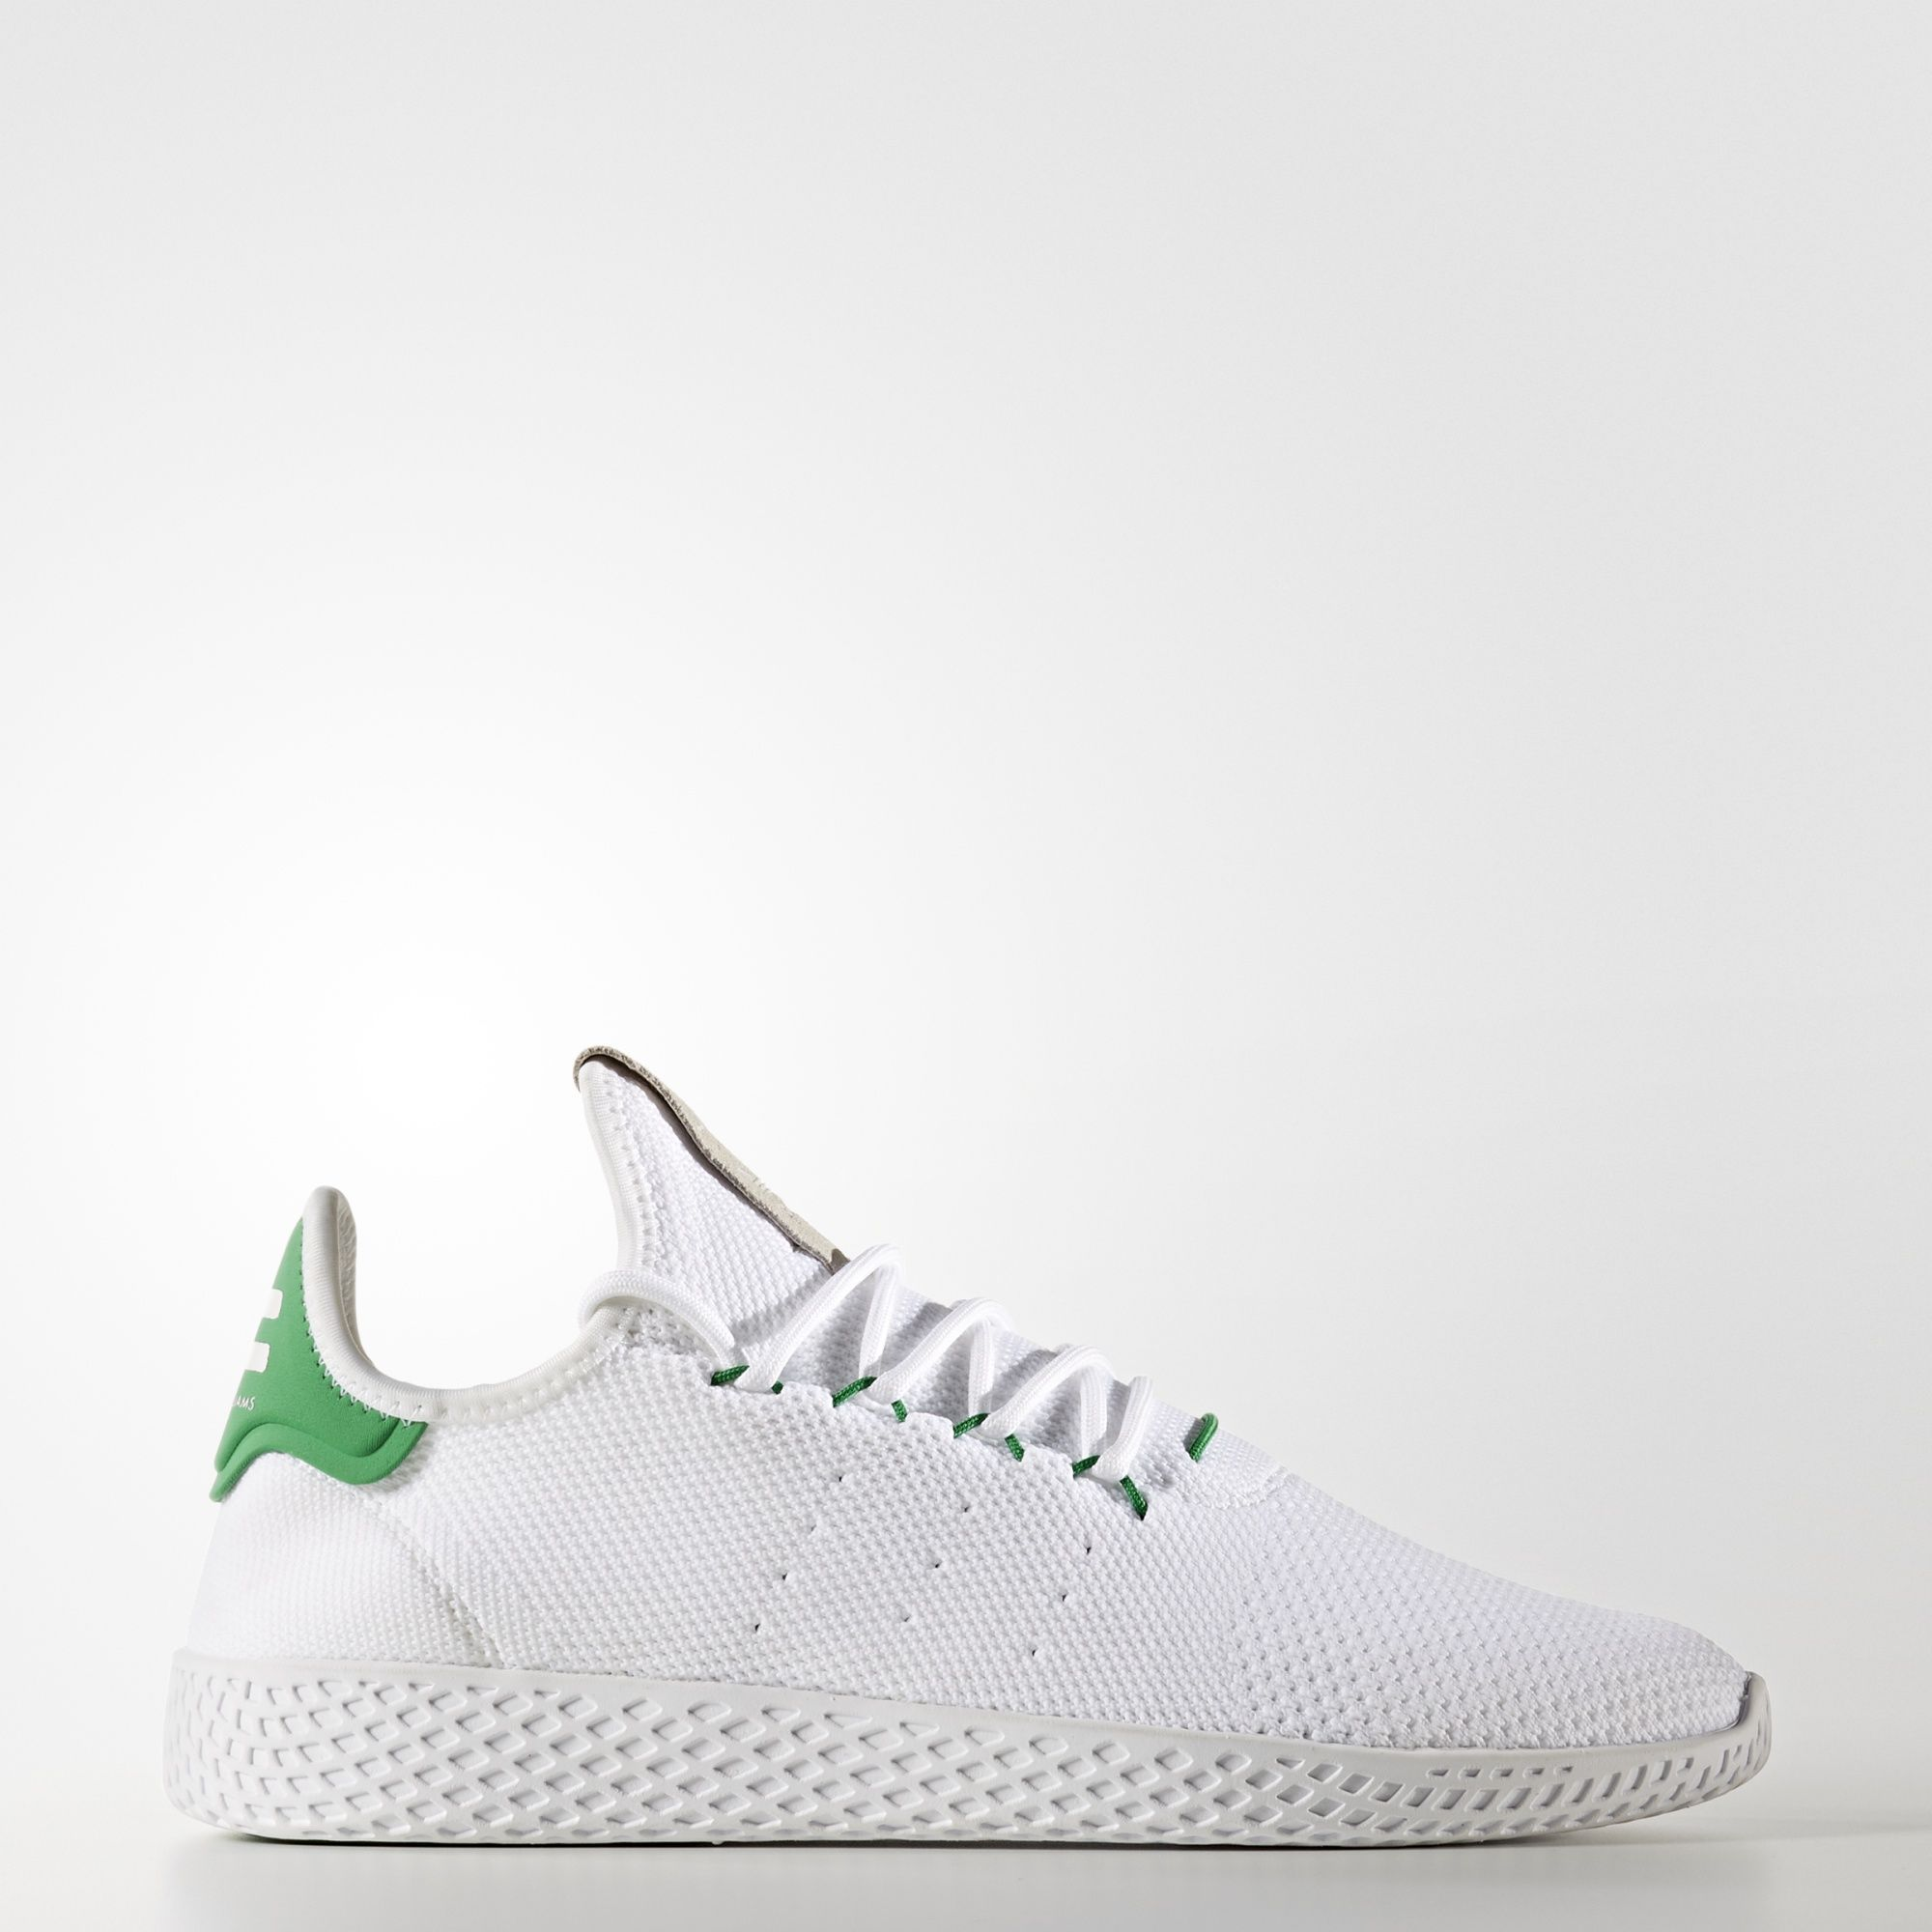 9d9a8282e ... adidas pharrell williams tennis hu primeknit shoes